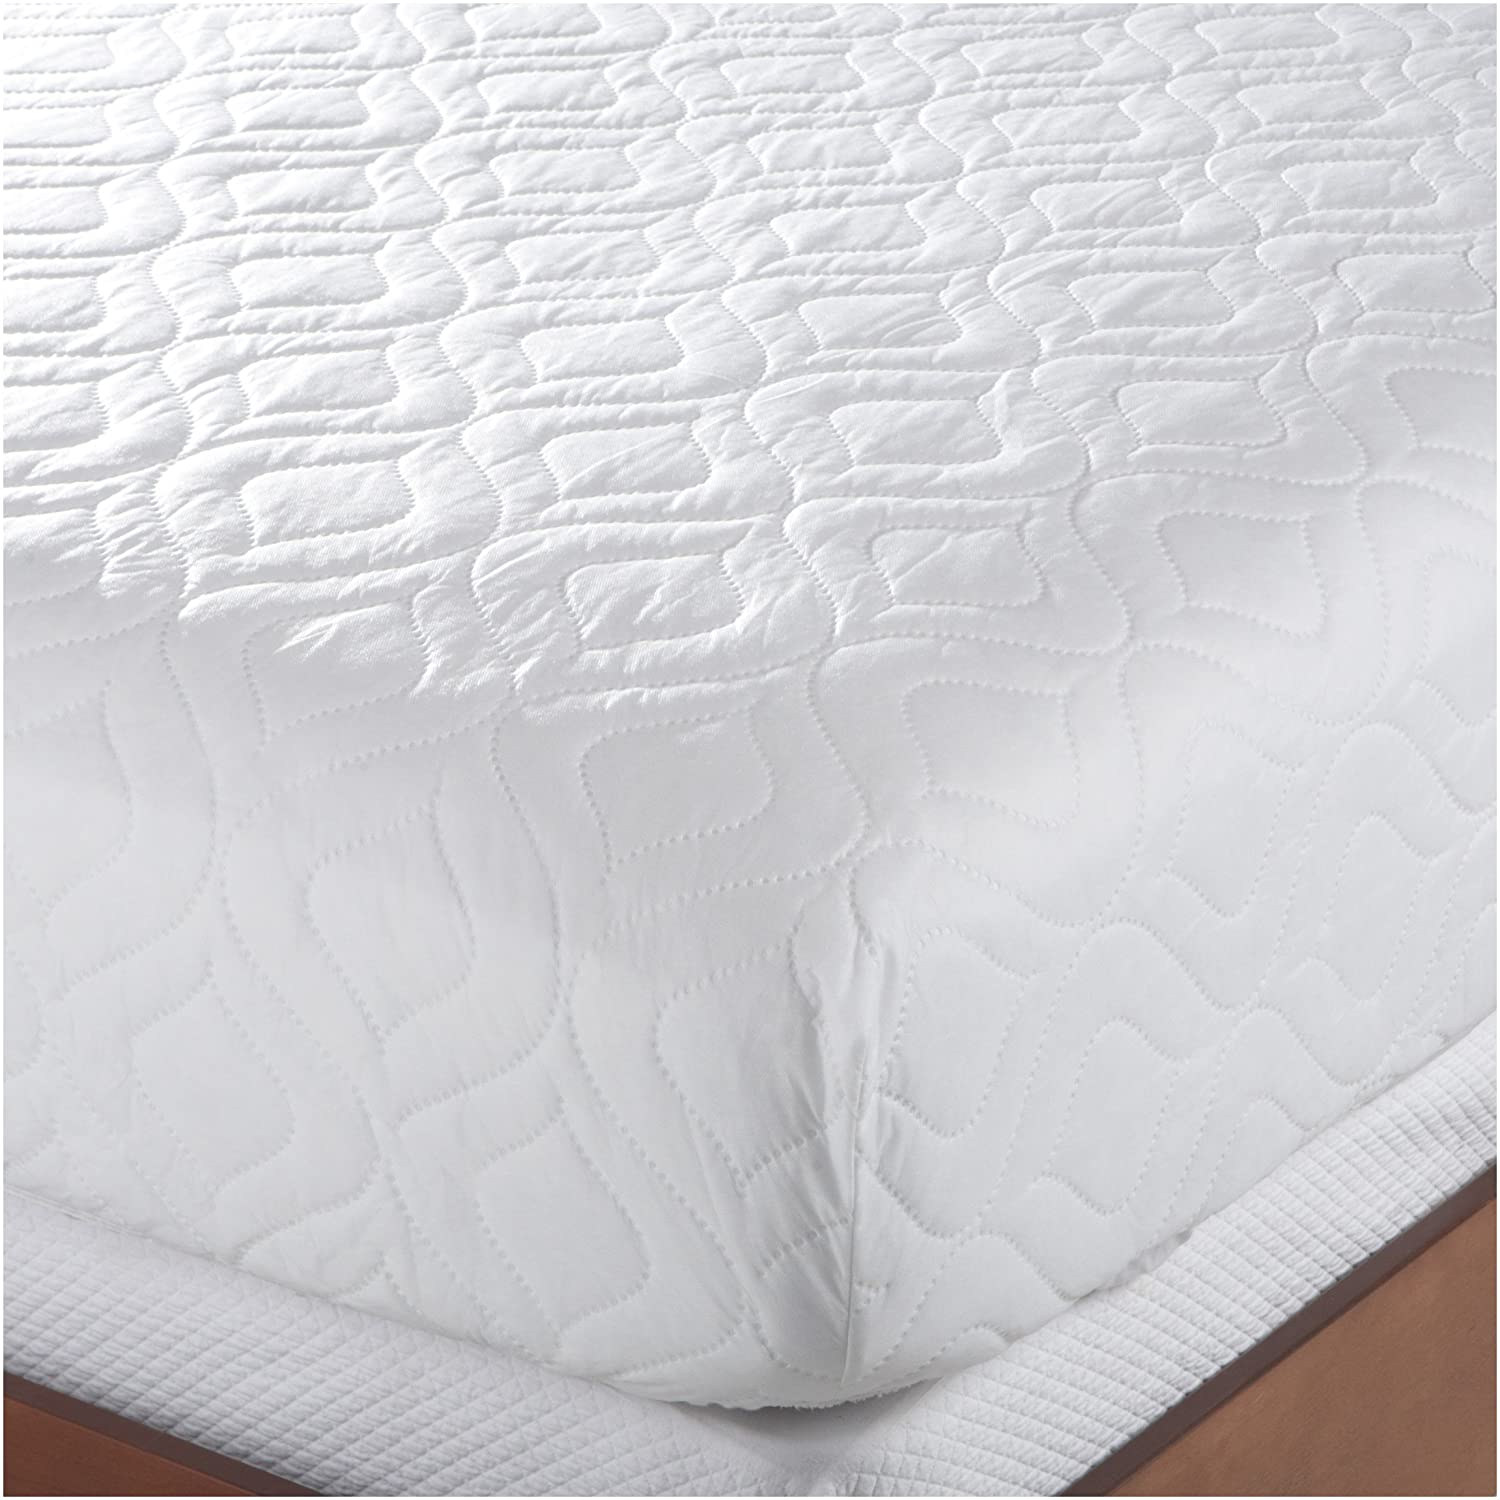 products ae koil pt king topper depot tx mattress landau pillow top